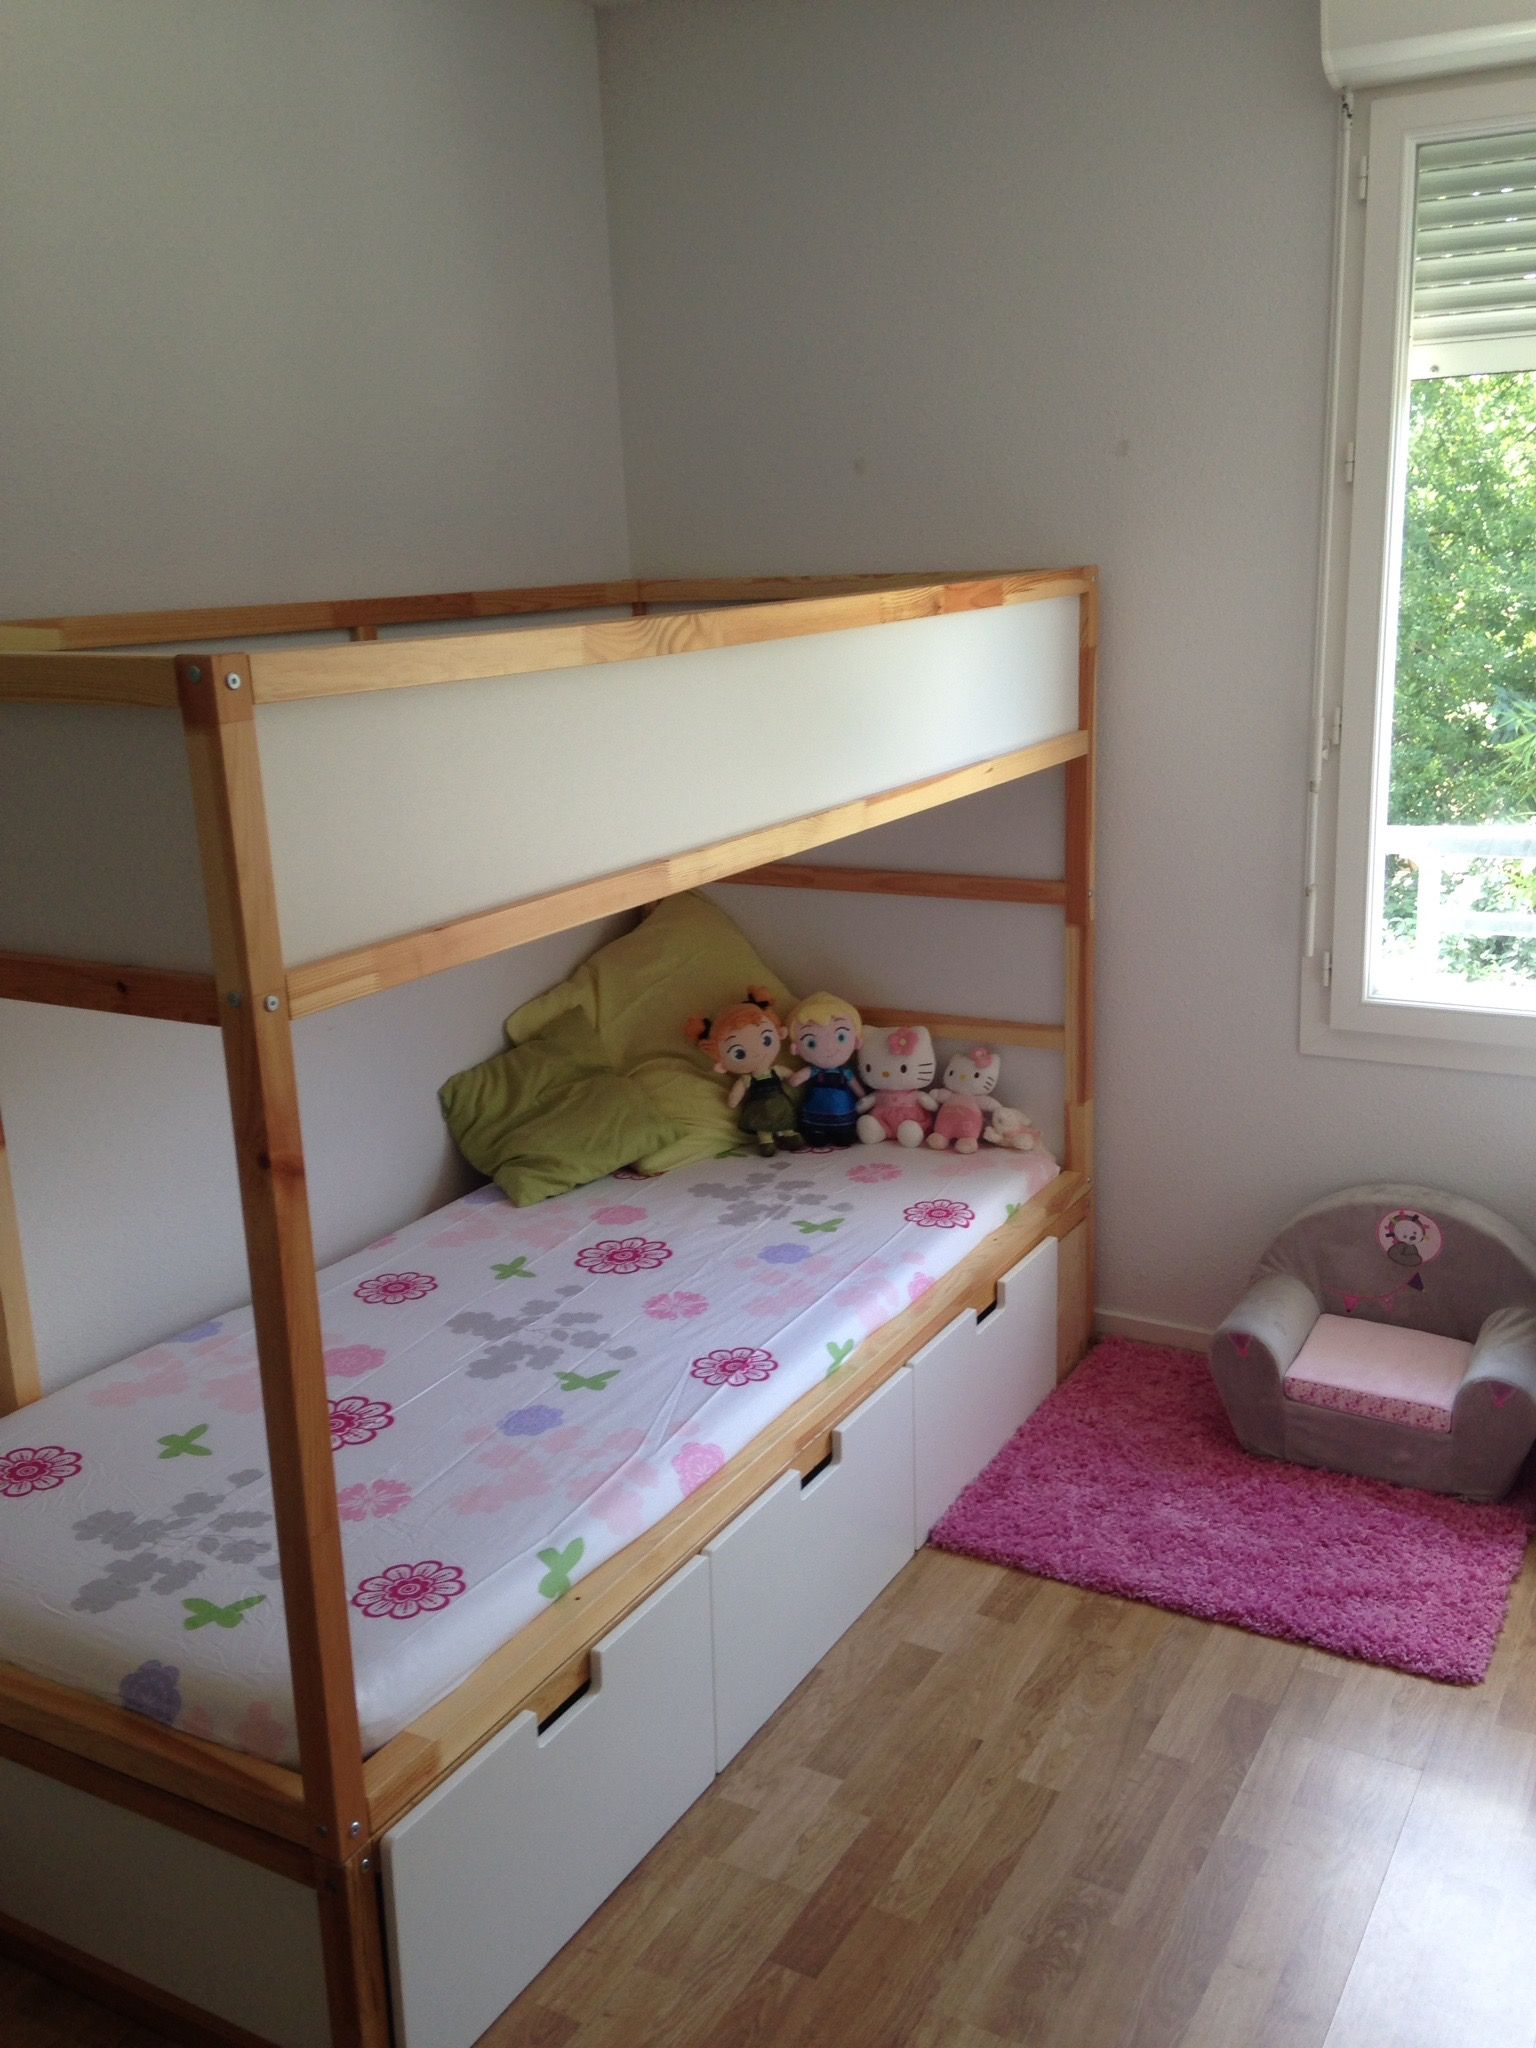 I Would Like ThisIkea Hack Kura Bed Done To My Sons Room Cama KuraLitera IkeaHabitaciones De Bebe Para